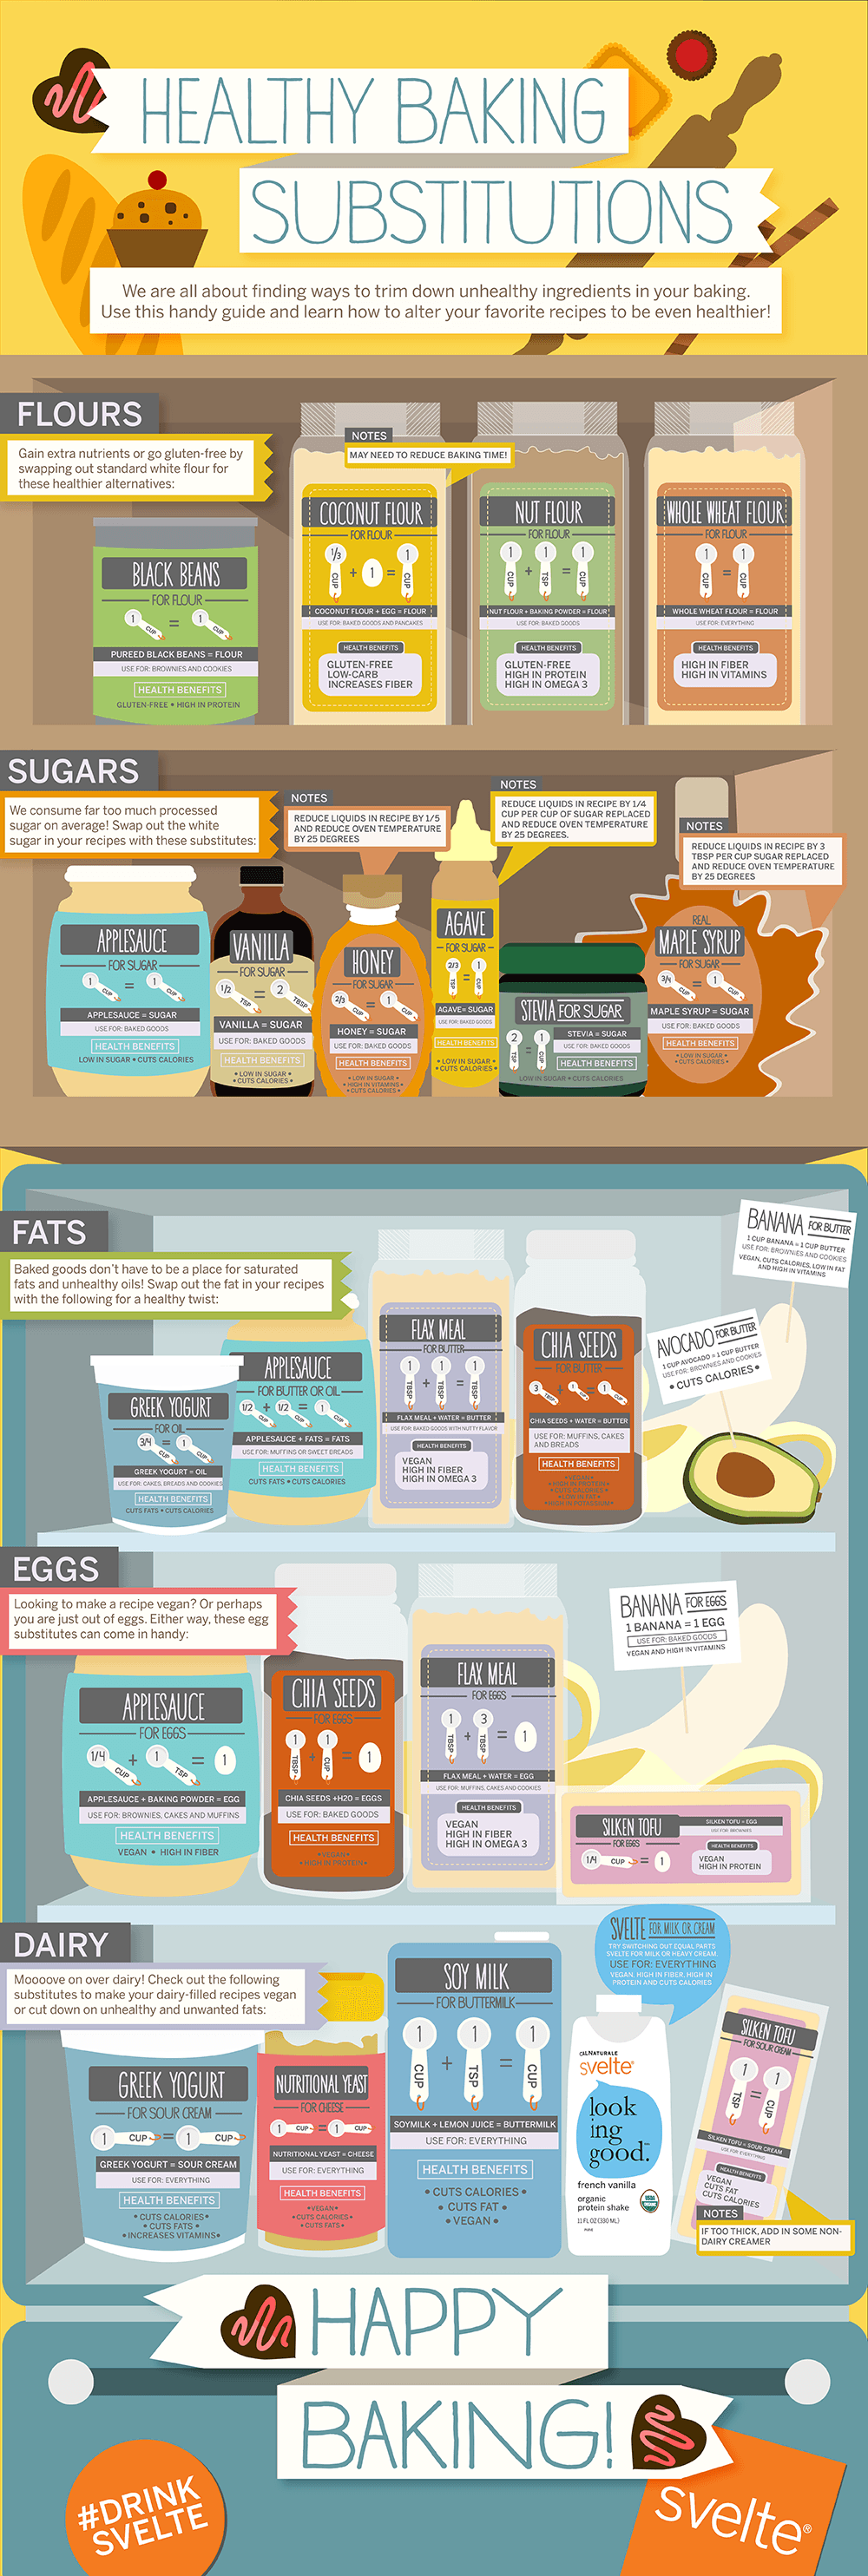 Everything You Need For Healthy Baking